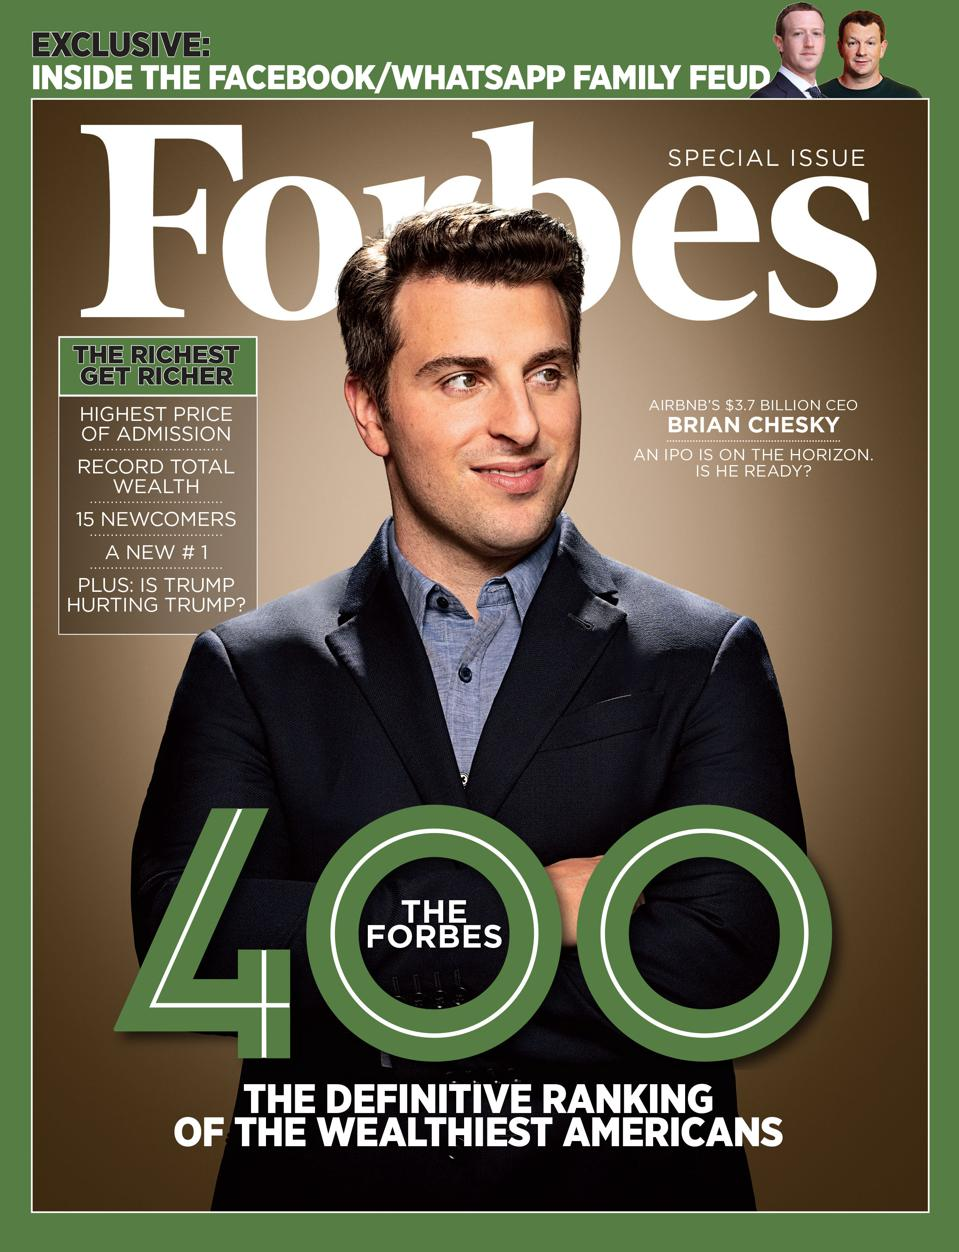 The October 31, 2018 issue of Forbes.